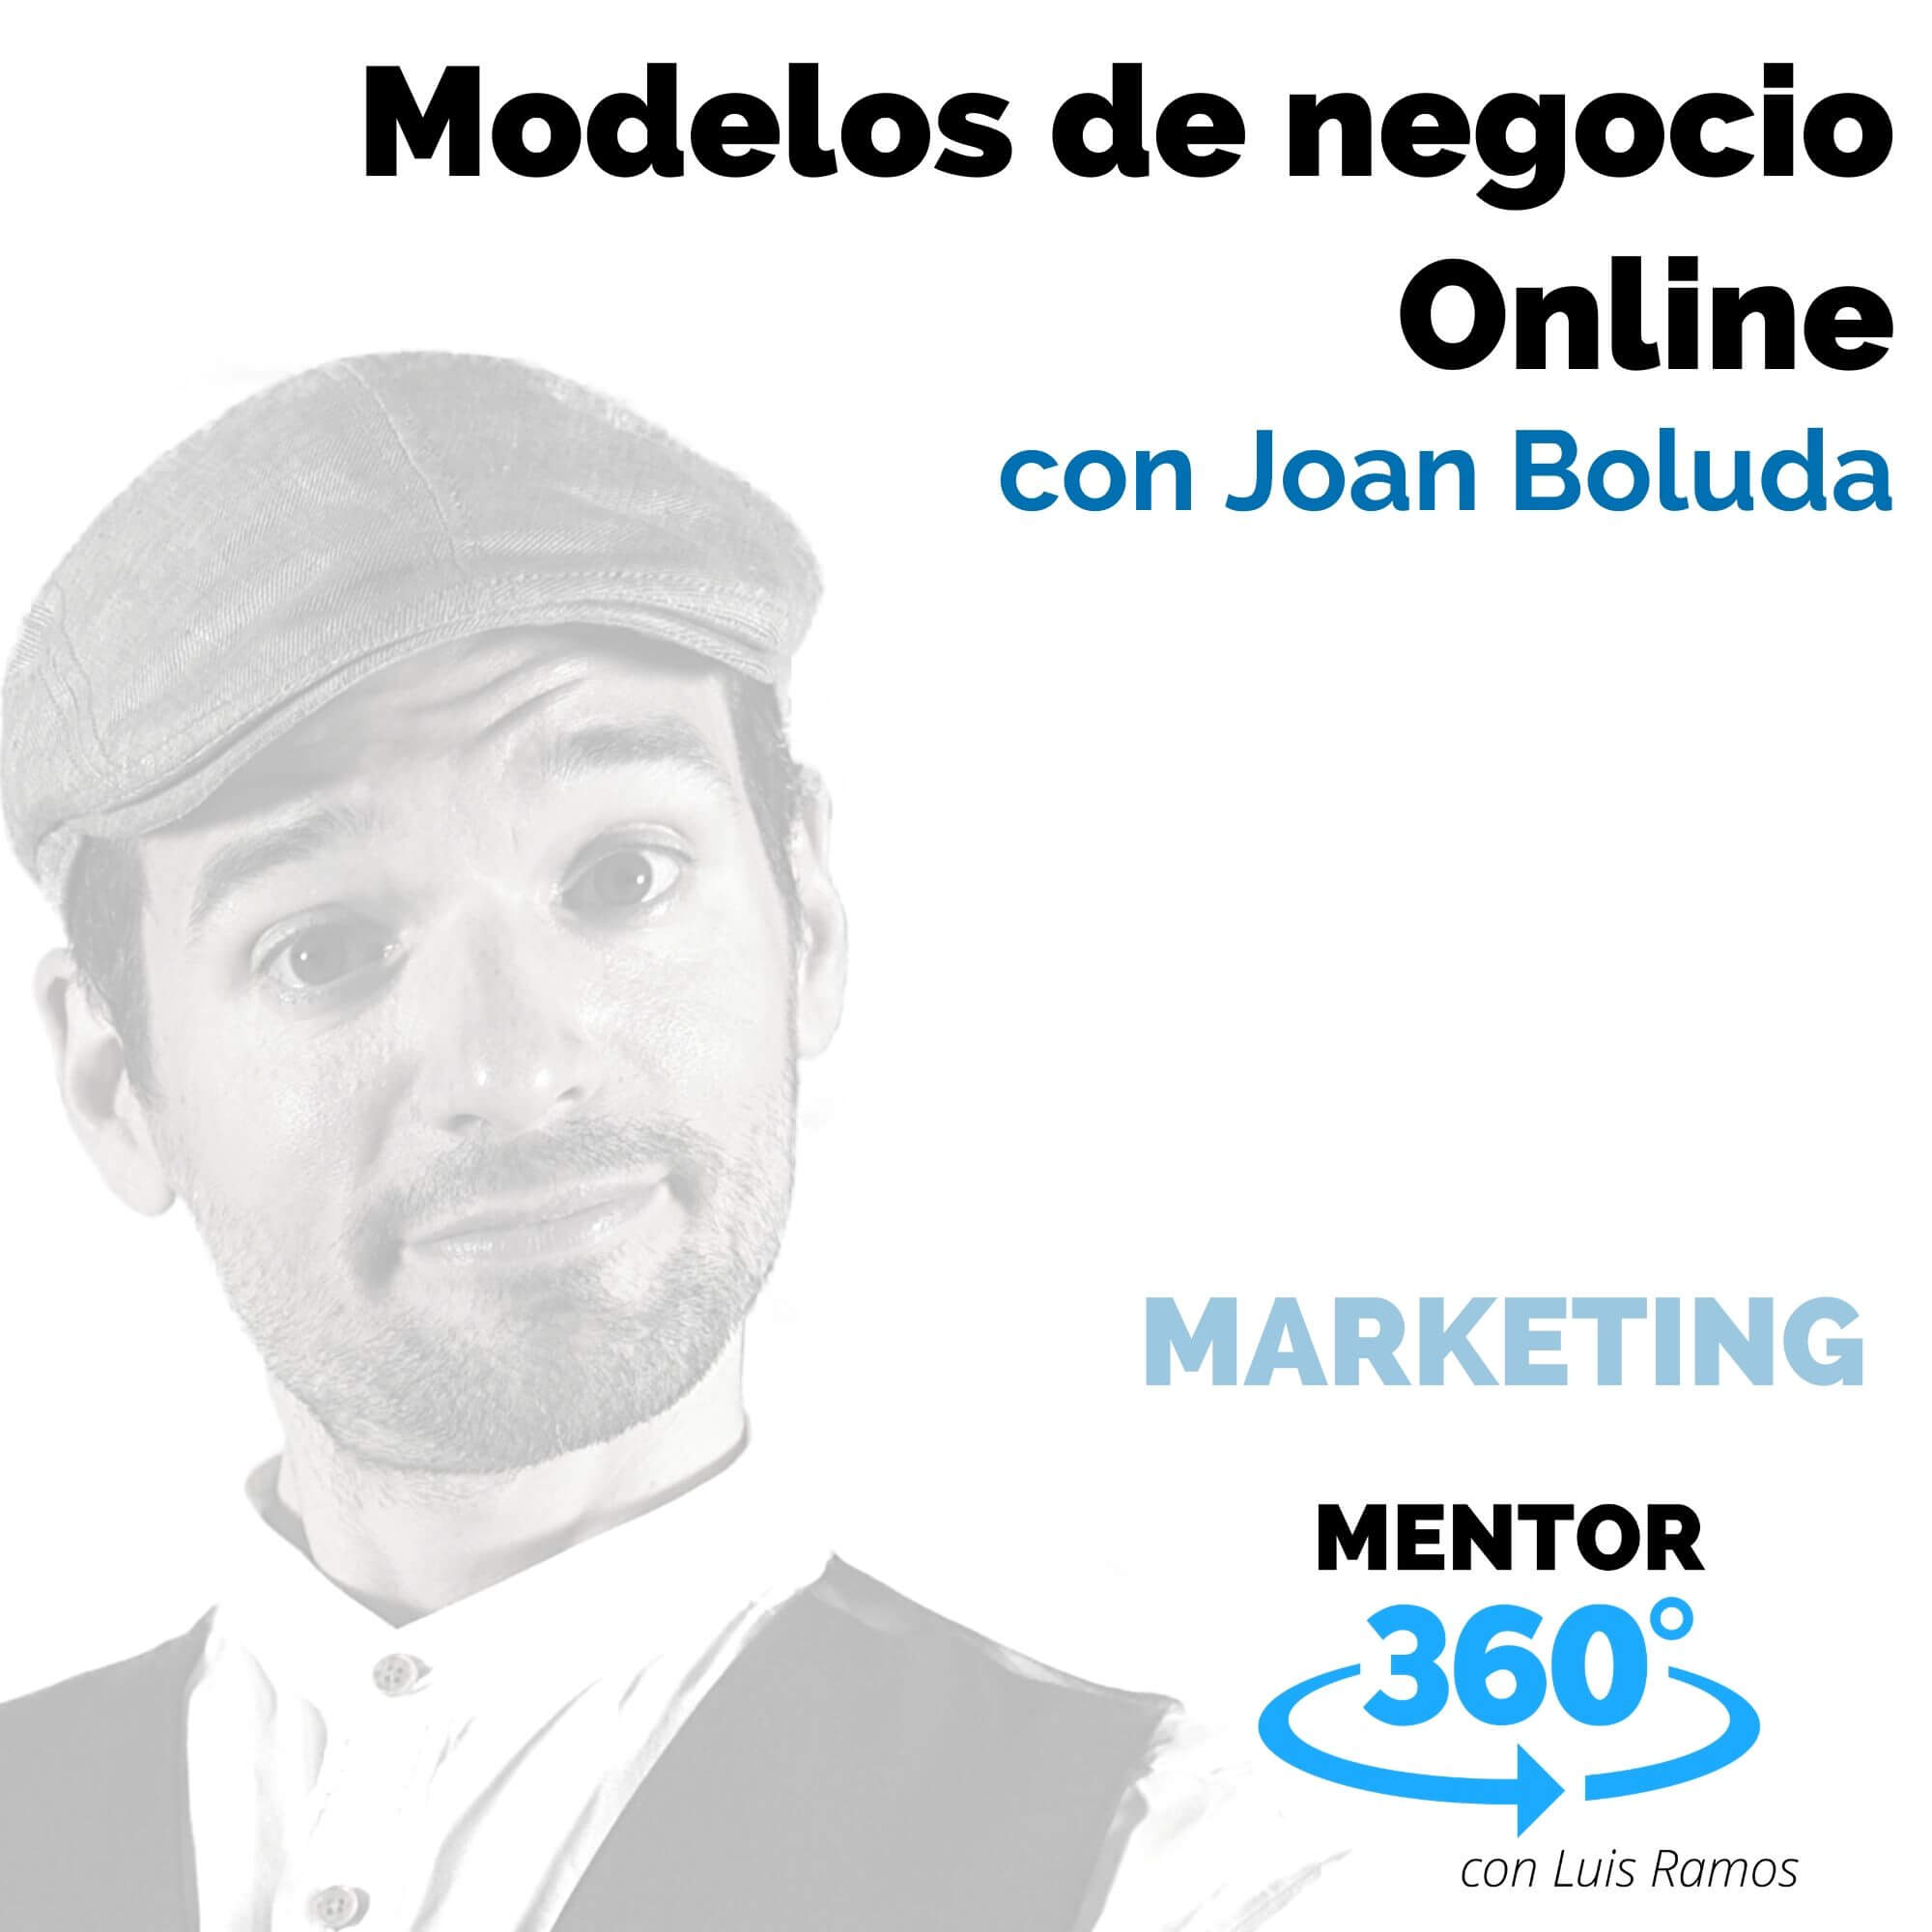 Modelos de negocio Online, con Joan Boluda - MARKETING